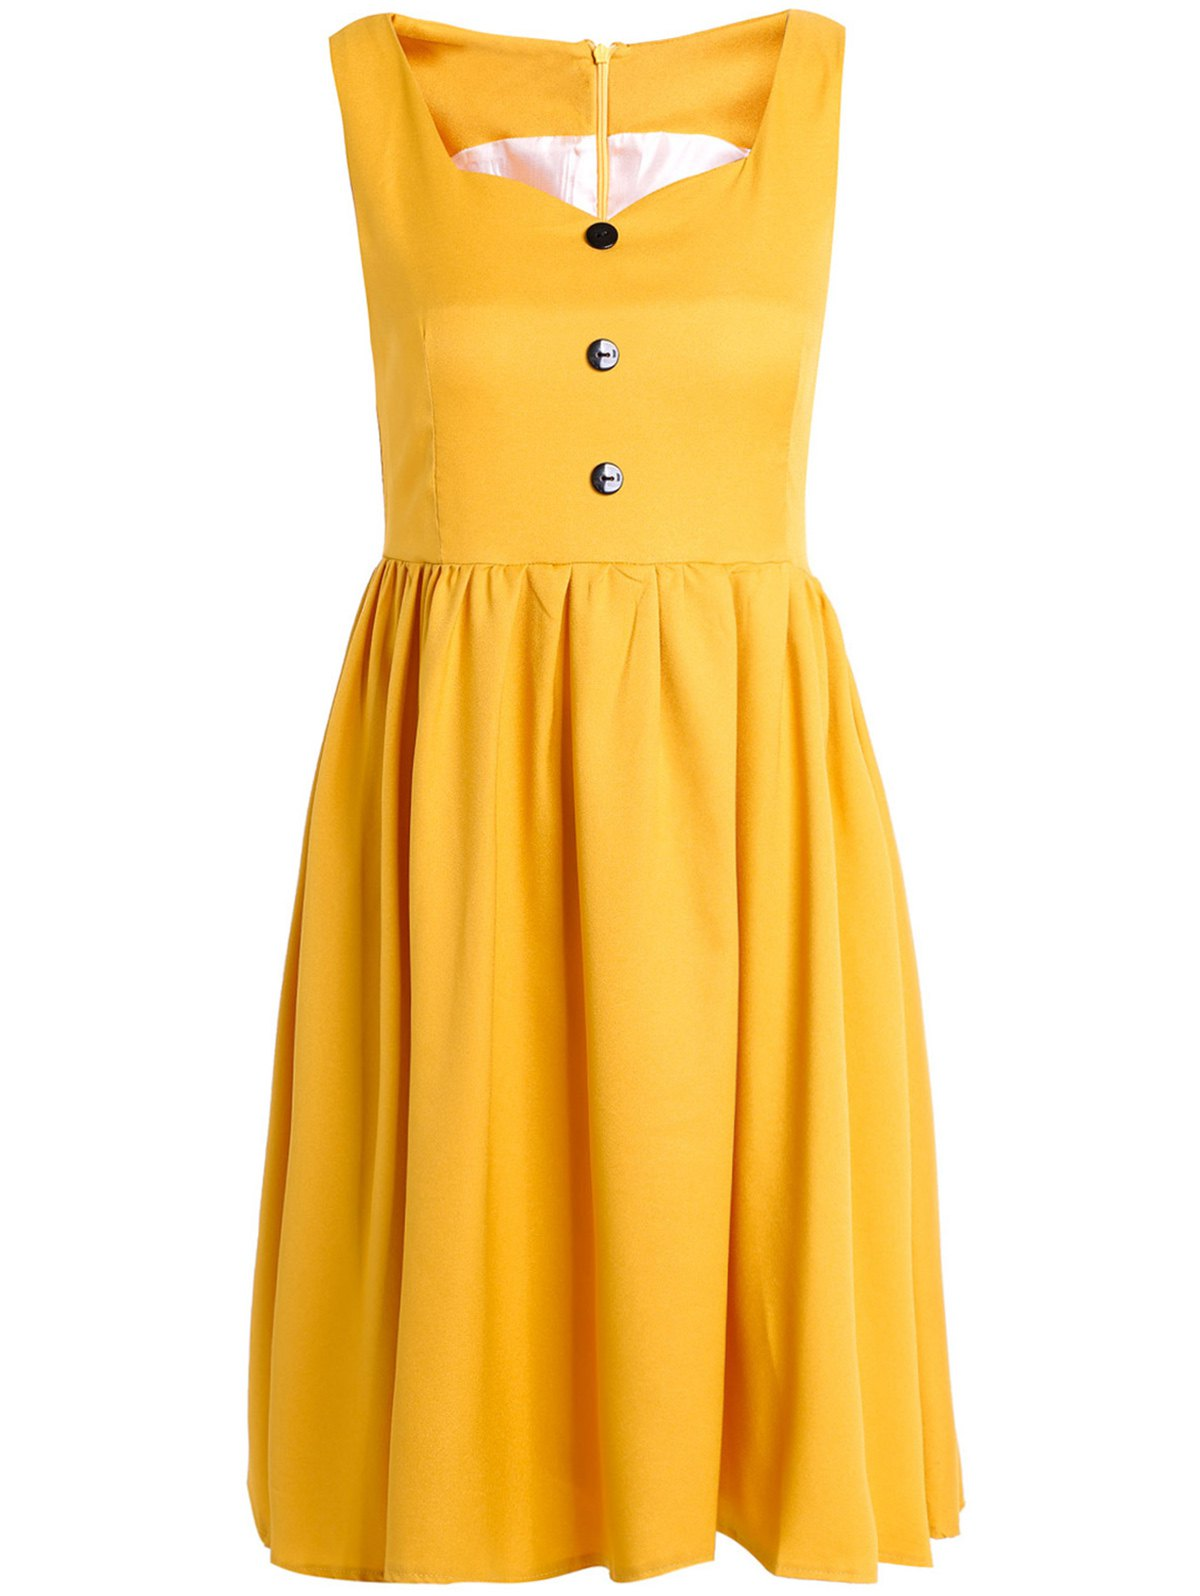 Vintage Sweetheart Neck Sleeveless Pure Color Women's Dress - YELLOW M